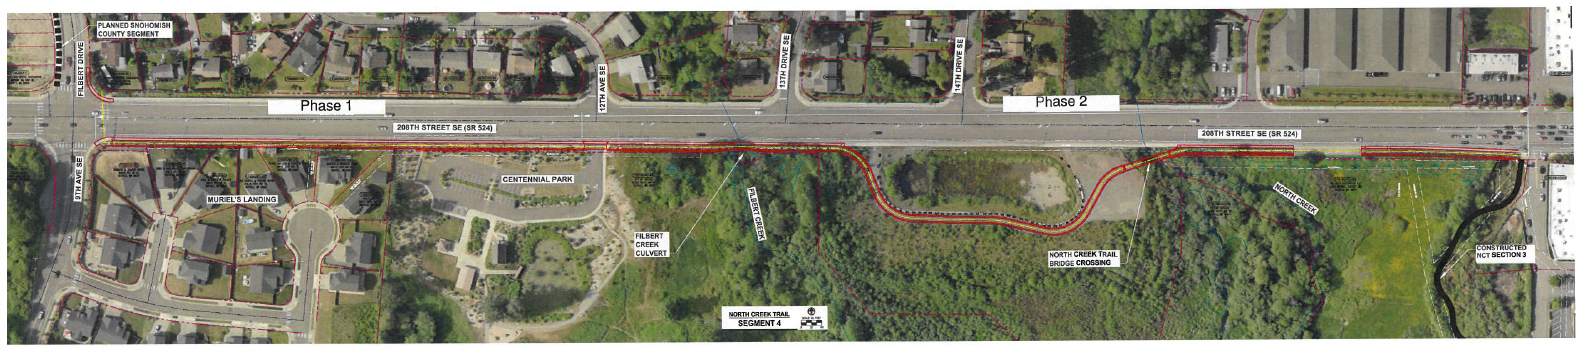 Proposed alignment for North Creek Trail Section 4, aerial view (JPG)